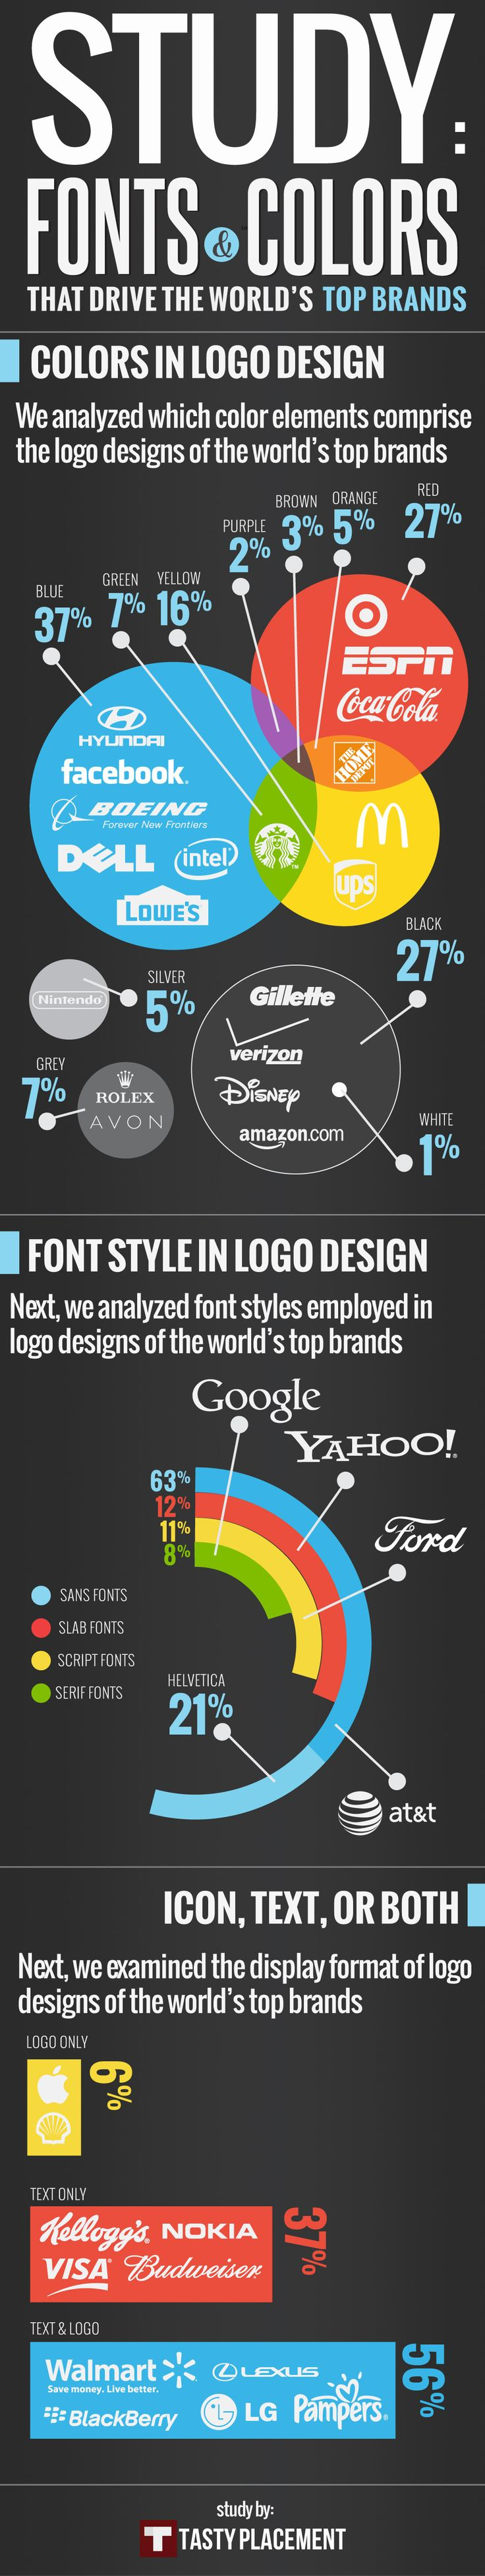 Typography. Tasty Placement, an Austin based digital agency, has researched what colors, typefaces and display formats top brands have used in their logo's. They found that blue is the most prominent color, while sans serif dominates the type style selection. The research also shows that Helvetica has not lost its appeal over the last 50 years - 21% of brands that choose a sans serif typeface settled for Helvetica. Most logo's, including those from top brands, have text support. #typography